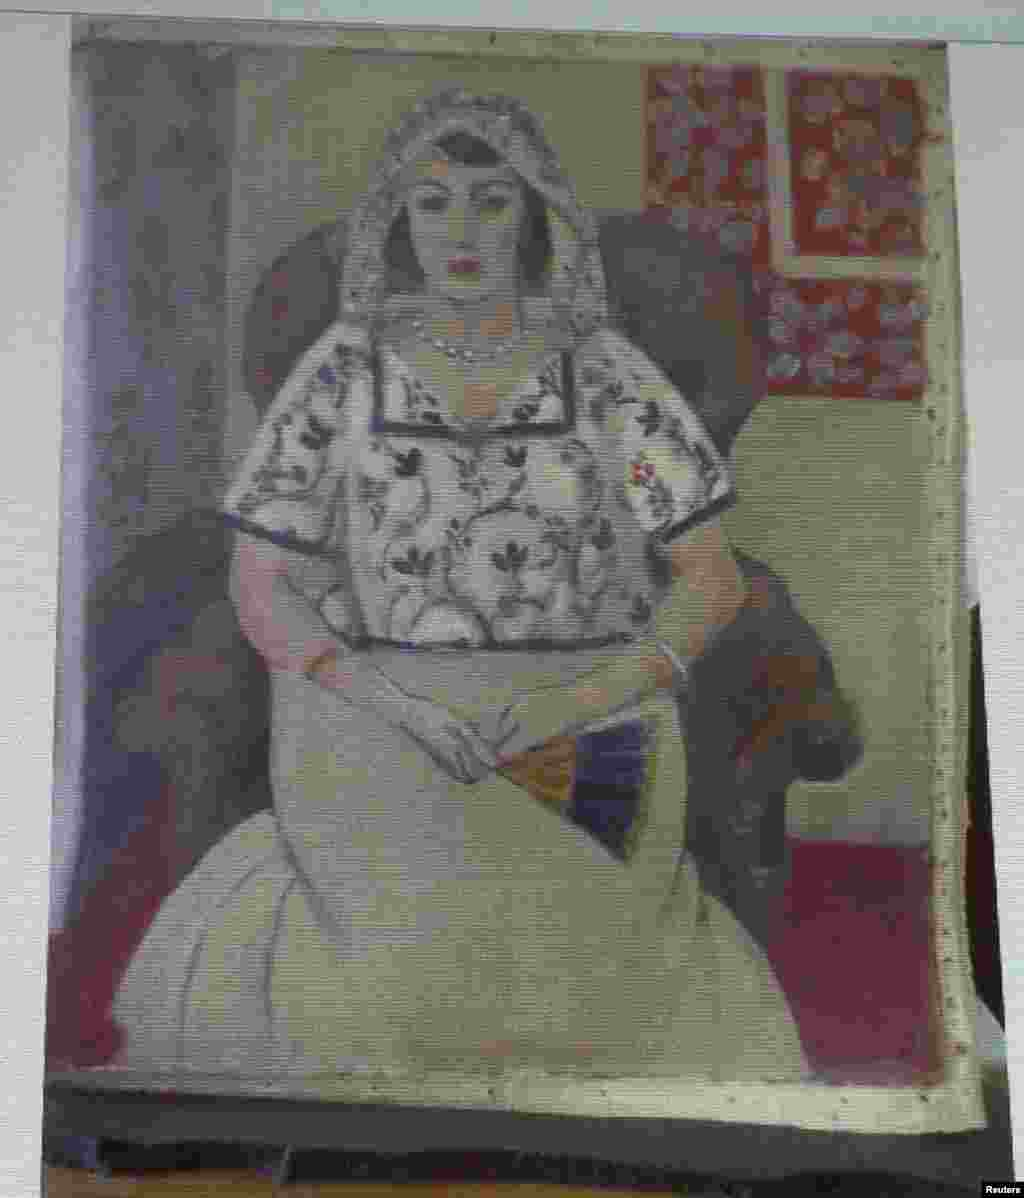 'Sitting Woman' by French artist Henri Matisse was one of the works found in a Munich apartment in 2011.